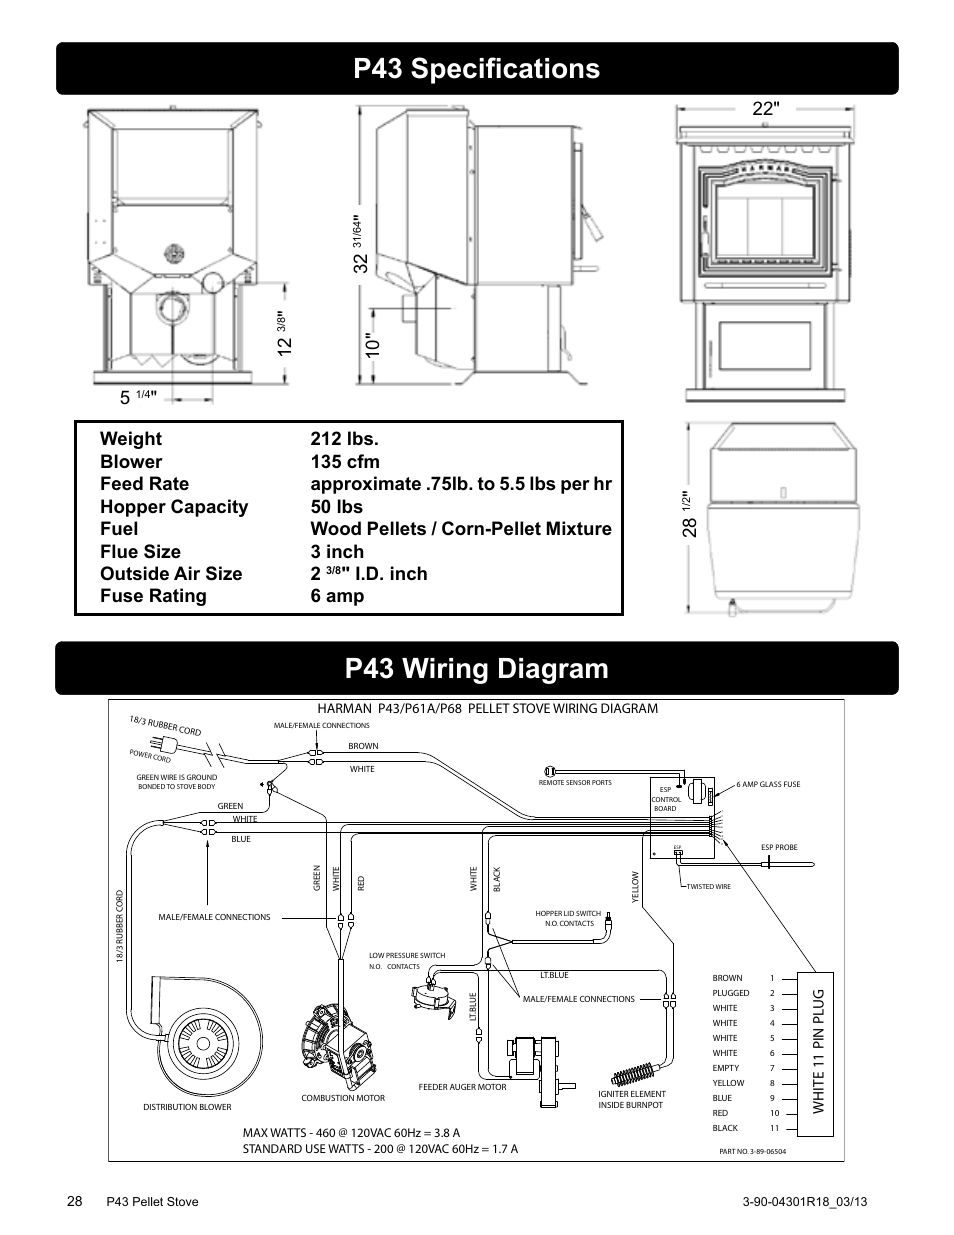 P43 specifications, P43 wiring diagram, I.d. inch fuse